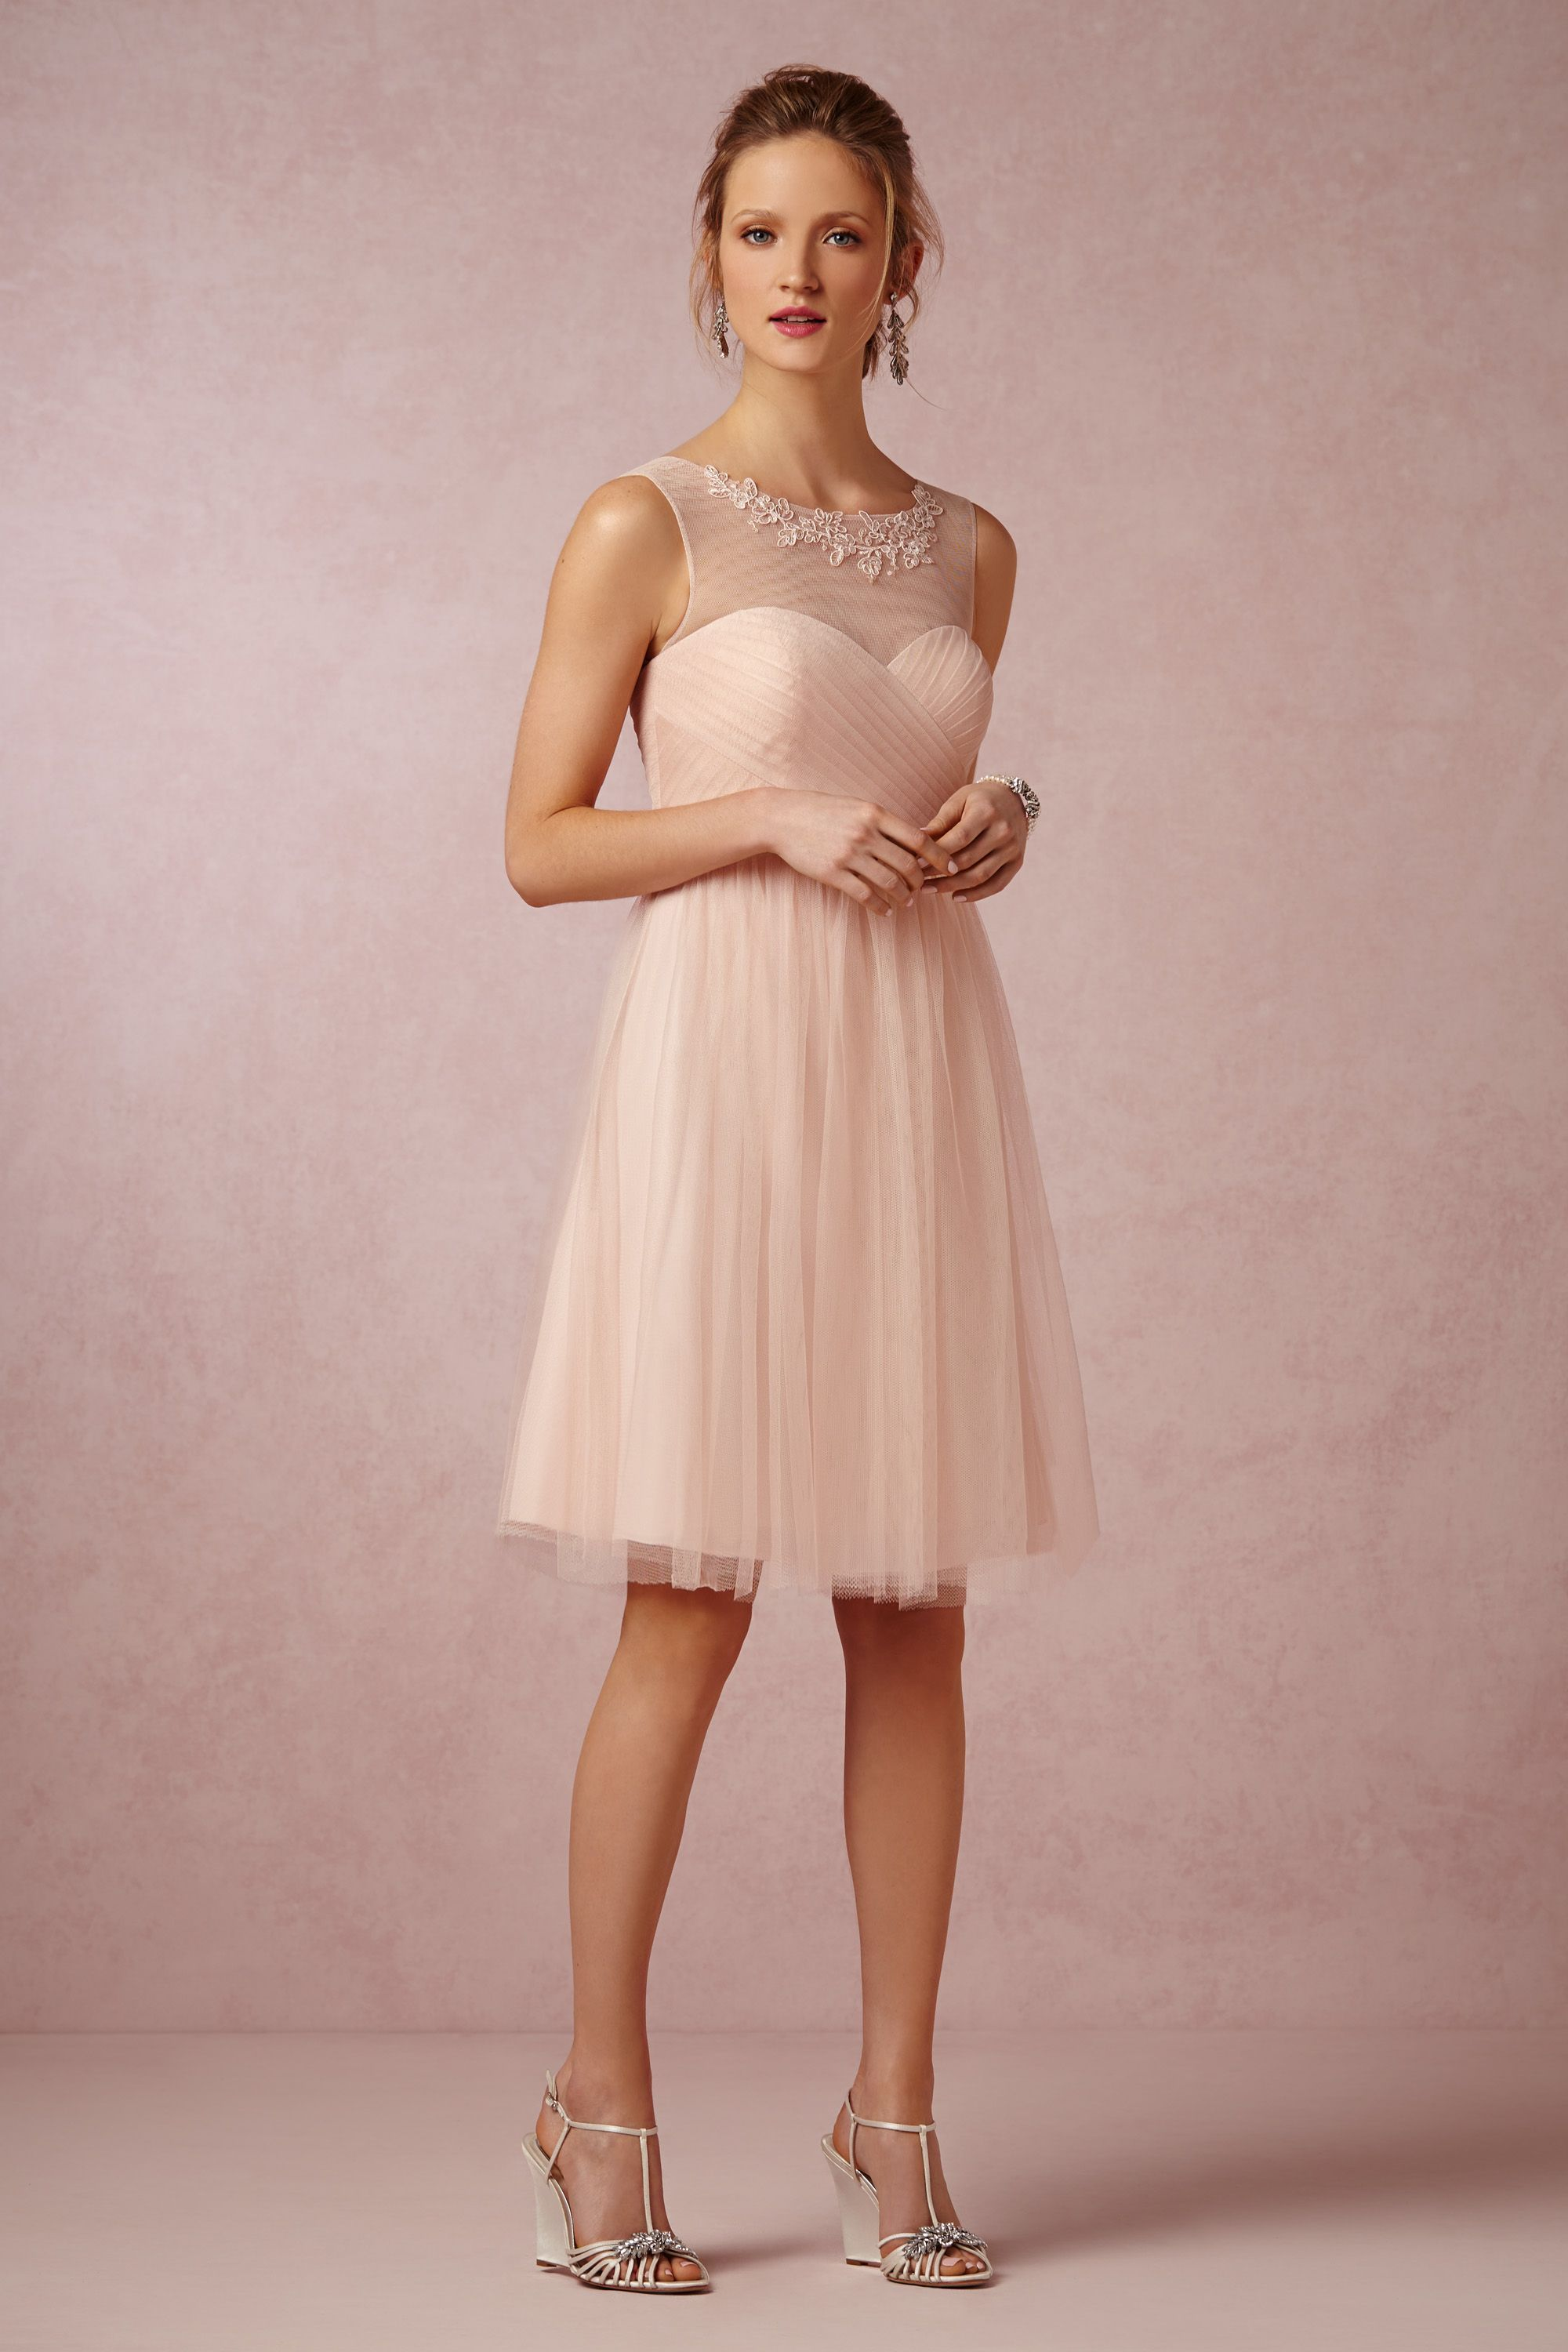 Blush and Pink Bridesmaid Dresses for Weddings | Pinterest | Damitas ...